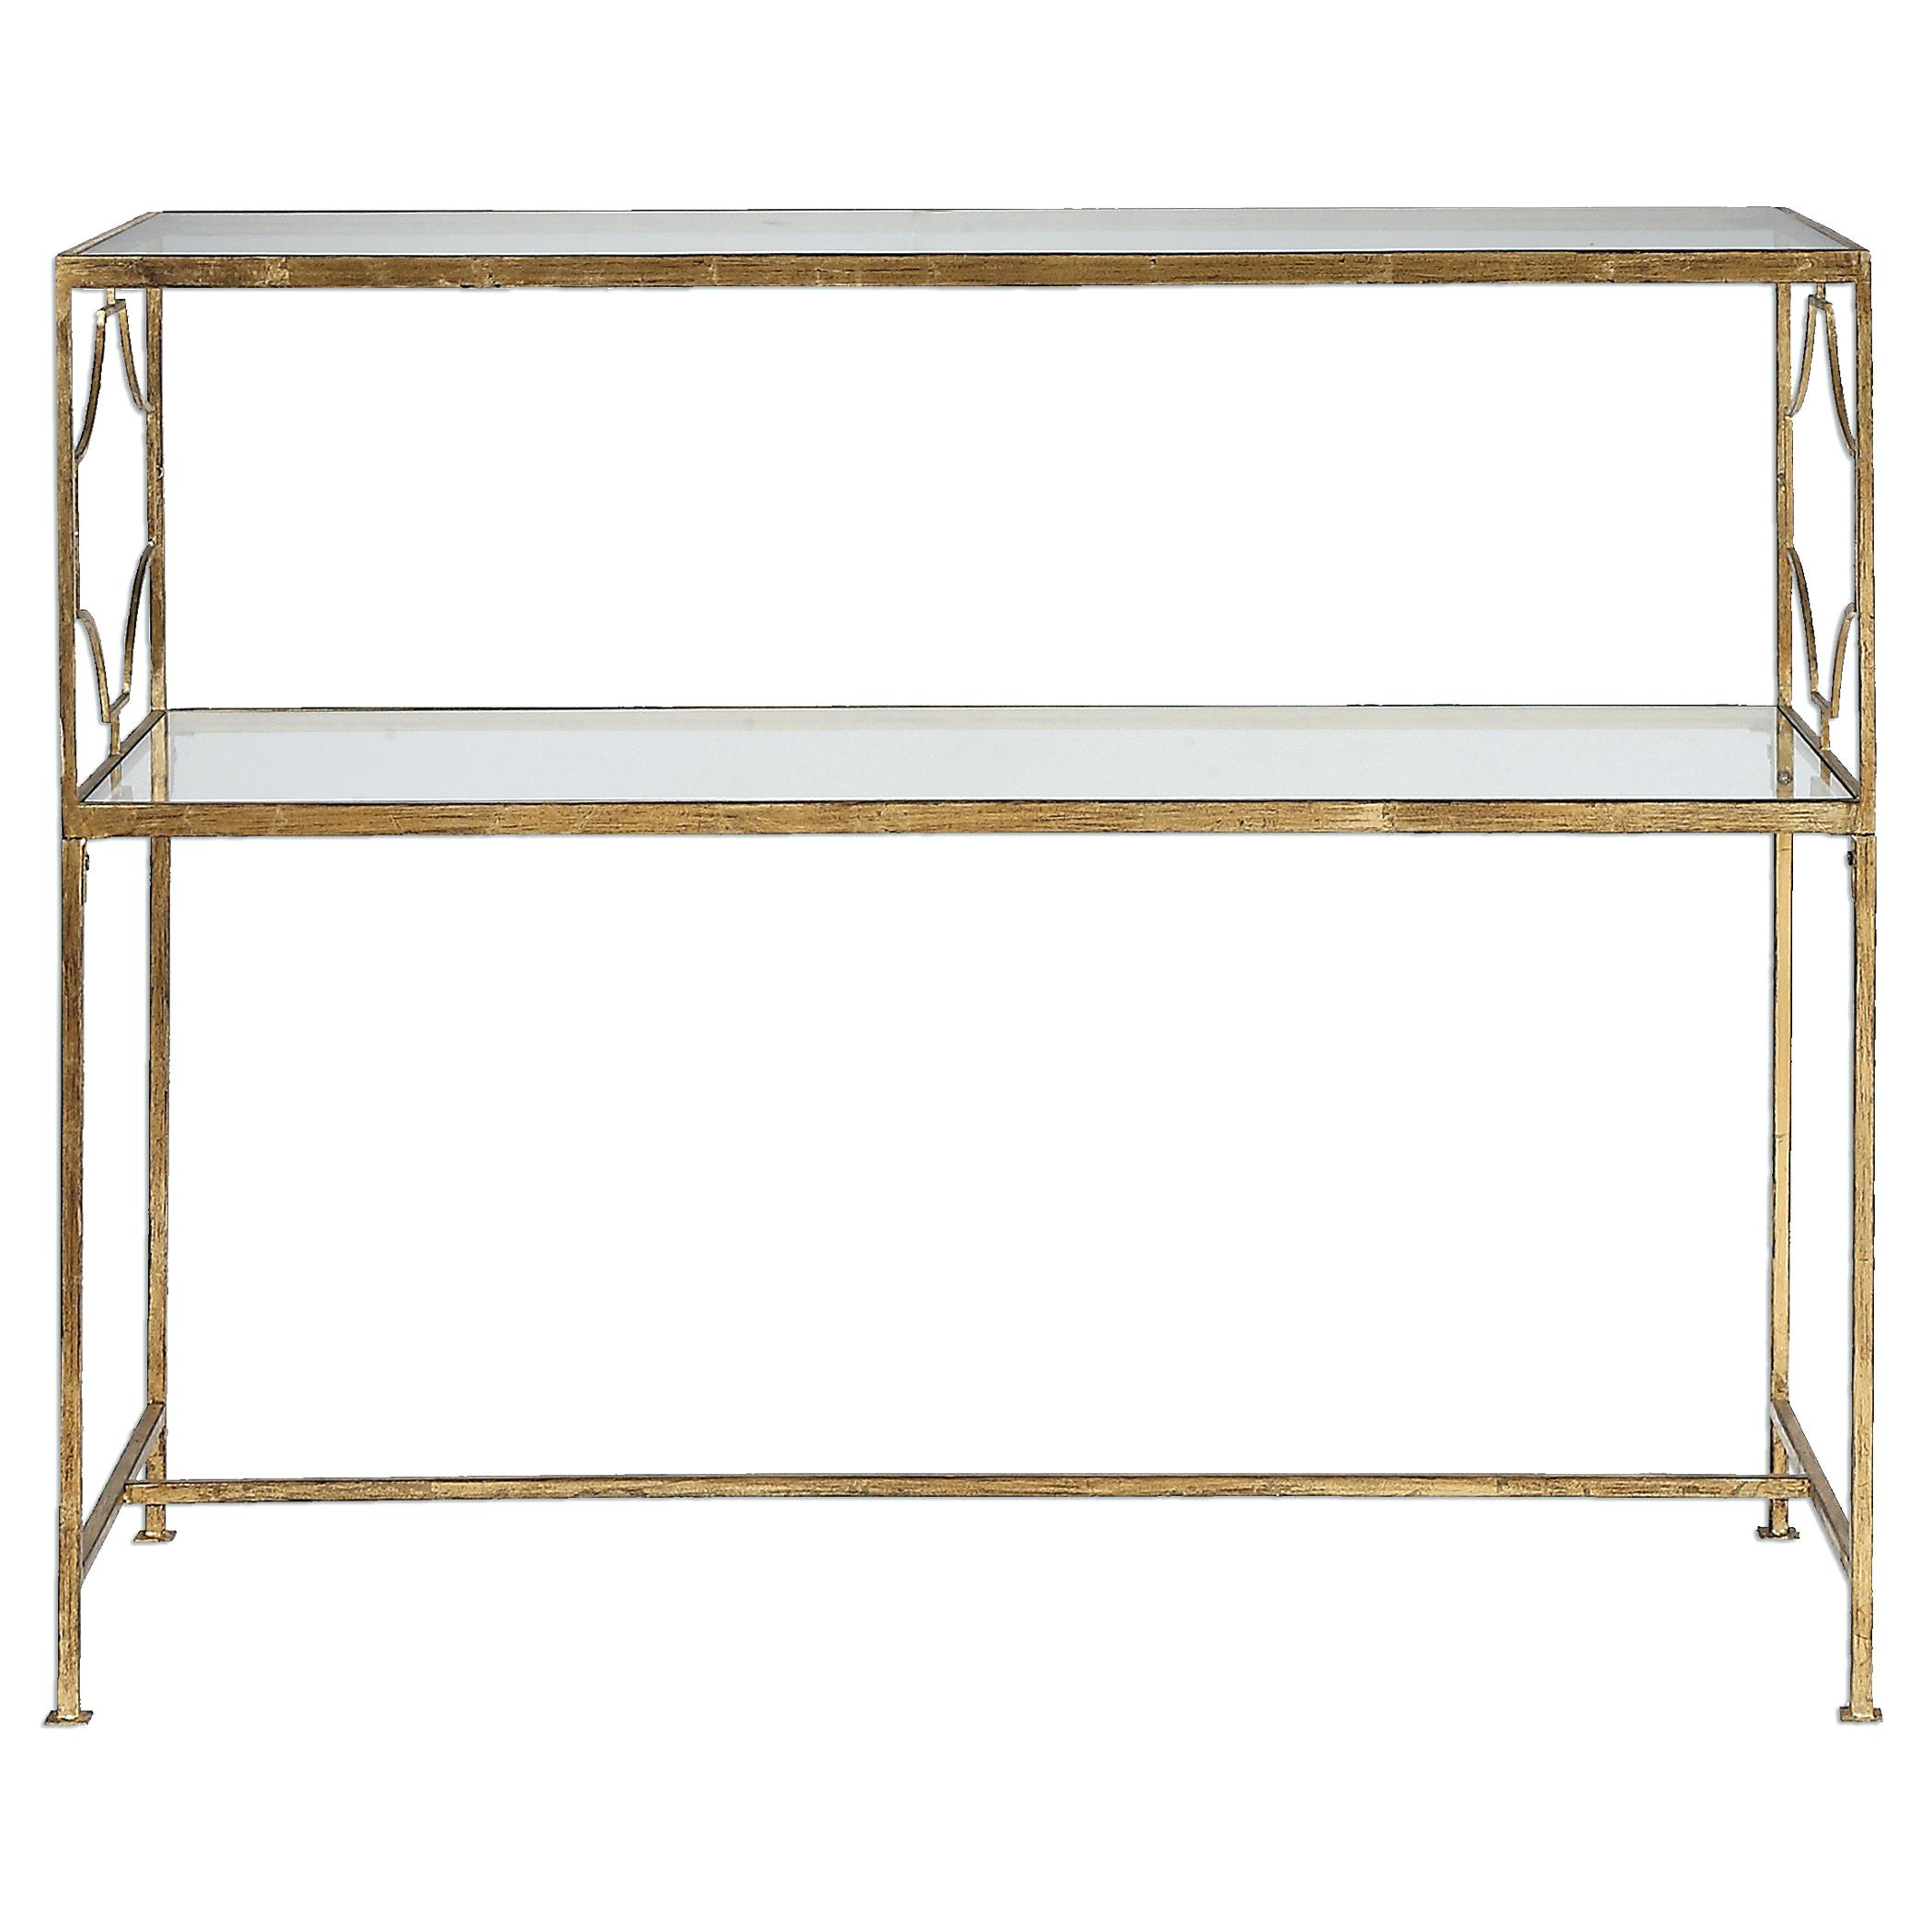 gold accent console table and glass modern uttermost furniture iron light floor lamp patio swing small metal end replacement cushions for black nightstand retro couch bohemian